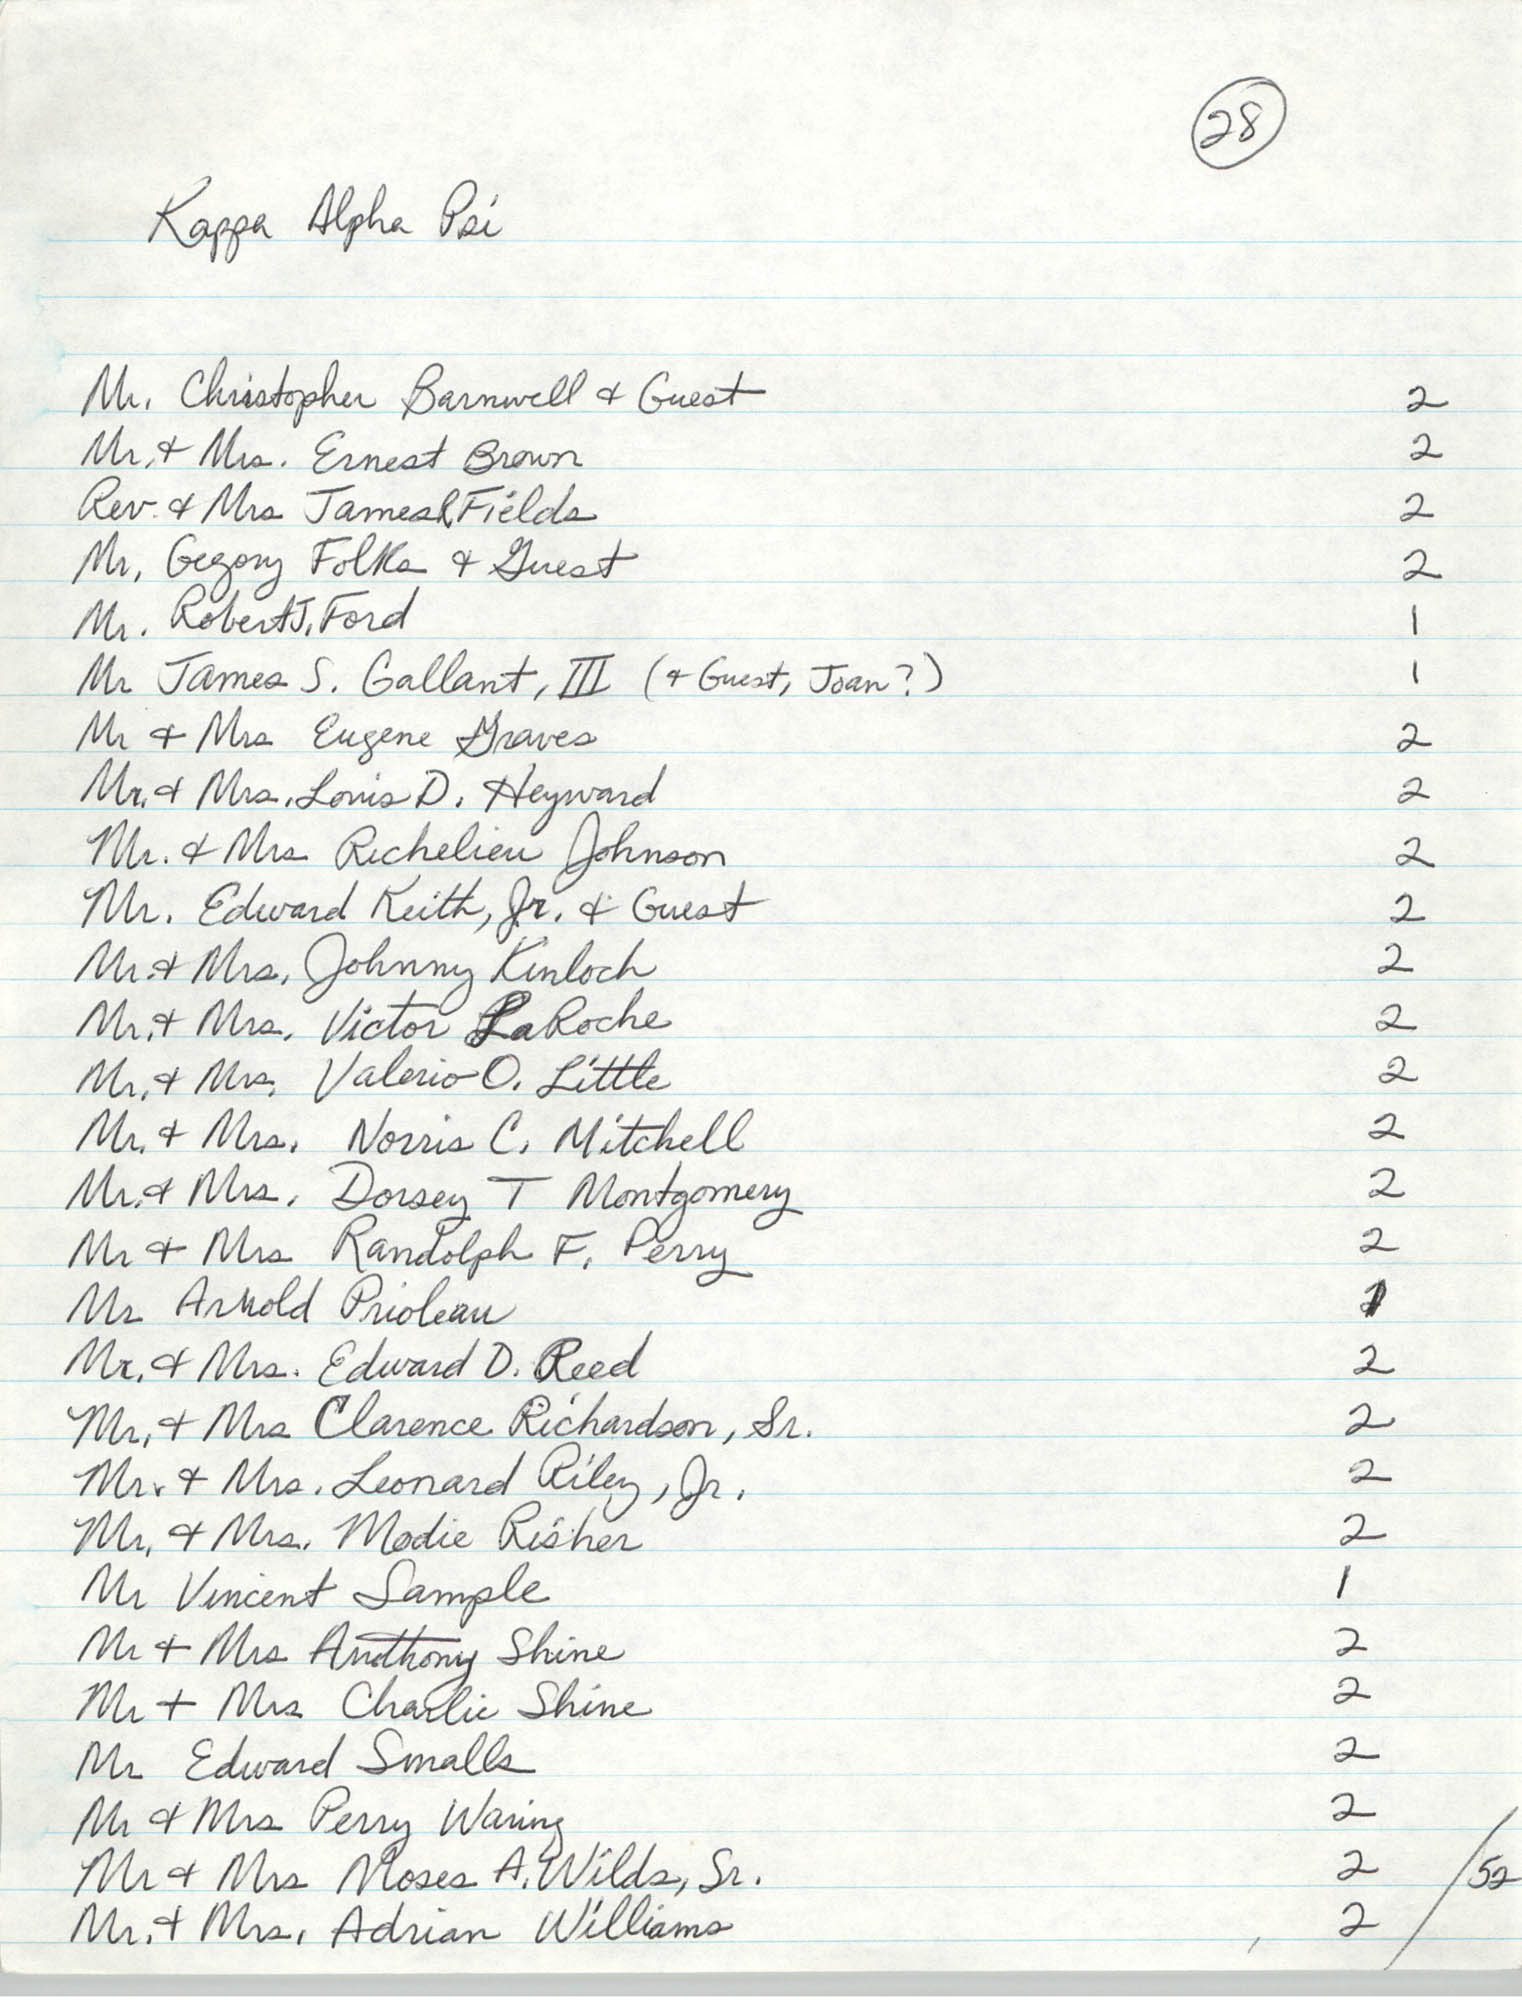 Kappa Alpha Psi, List of names